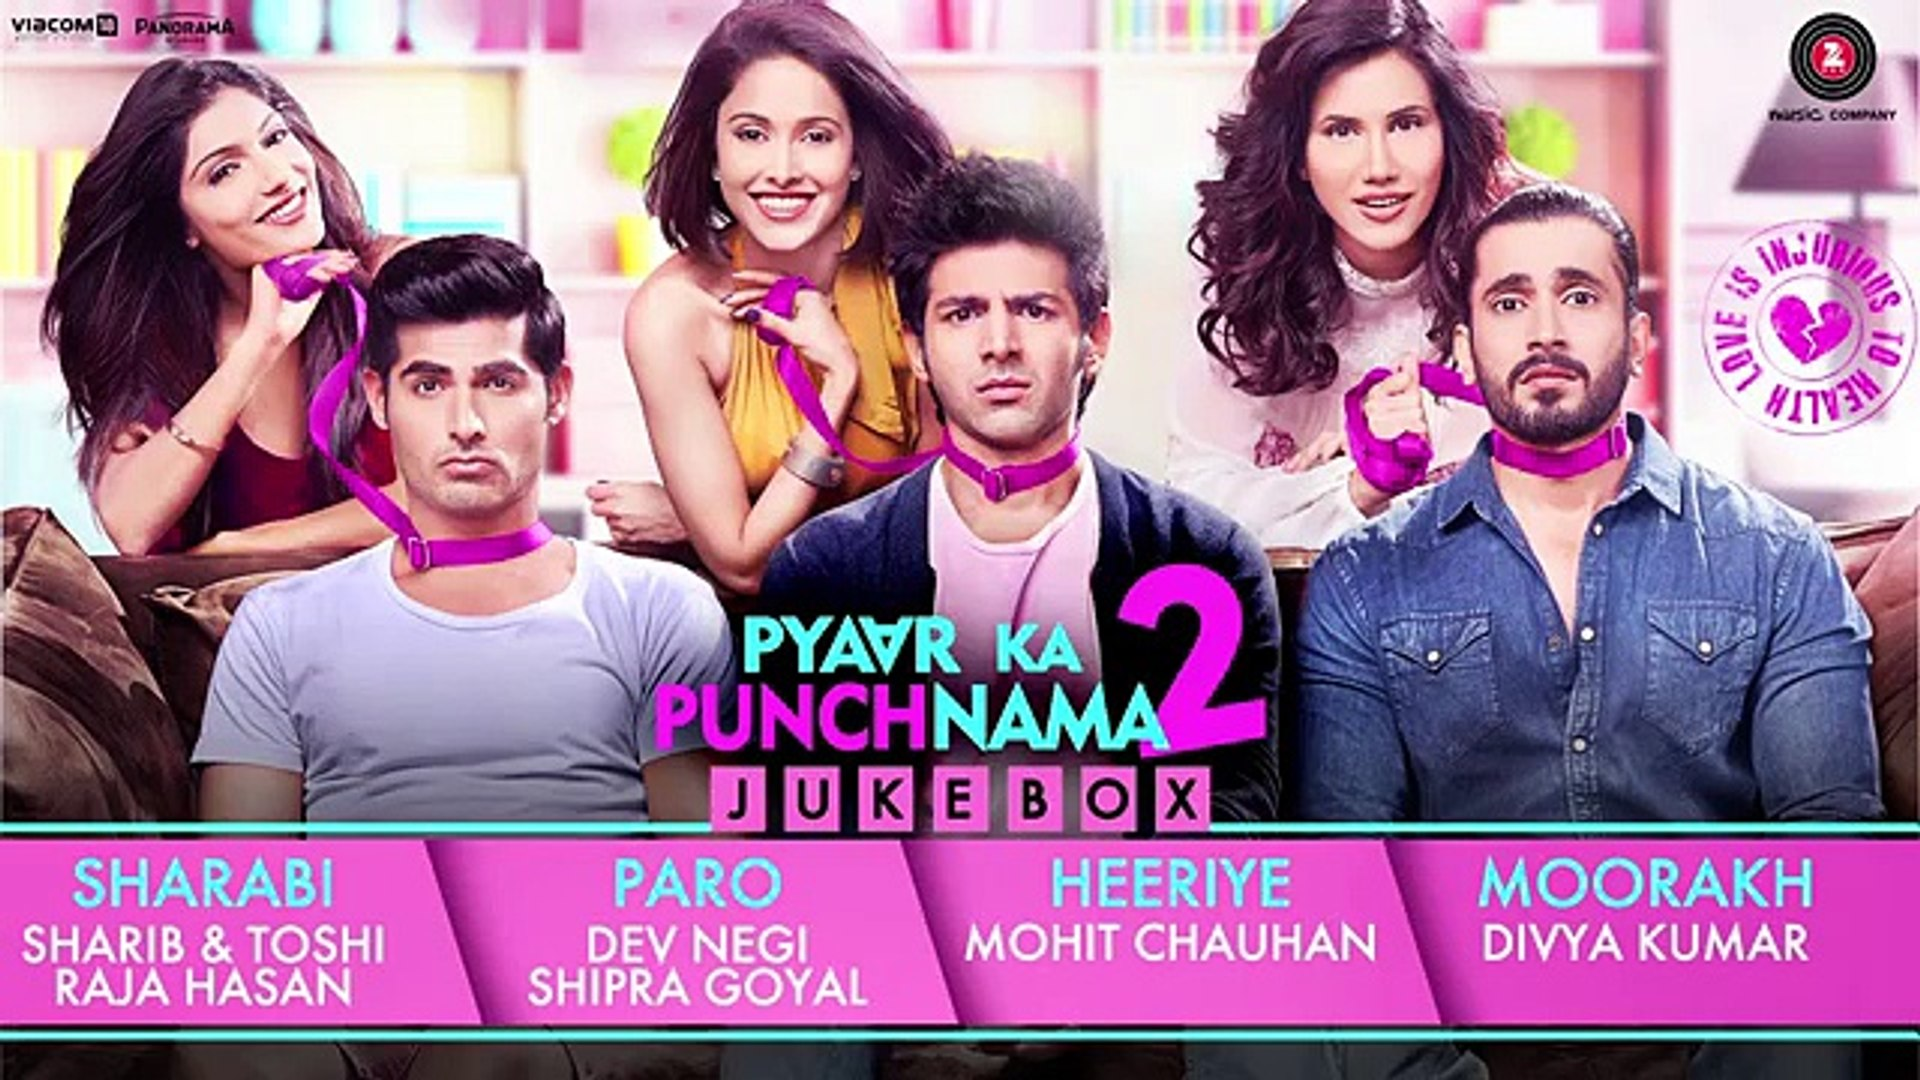 Pyaar Ka Punchnama 2 - Full Album - Audio Jukebox | Hitesh Sonik, Sharib & Toshi